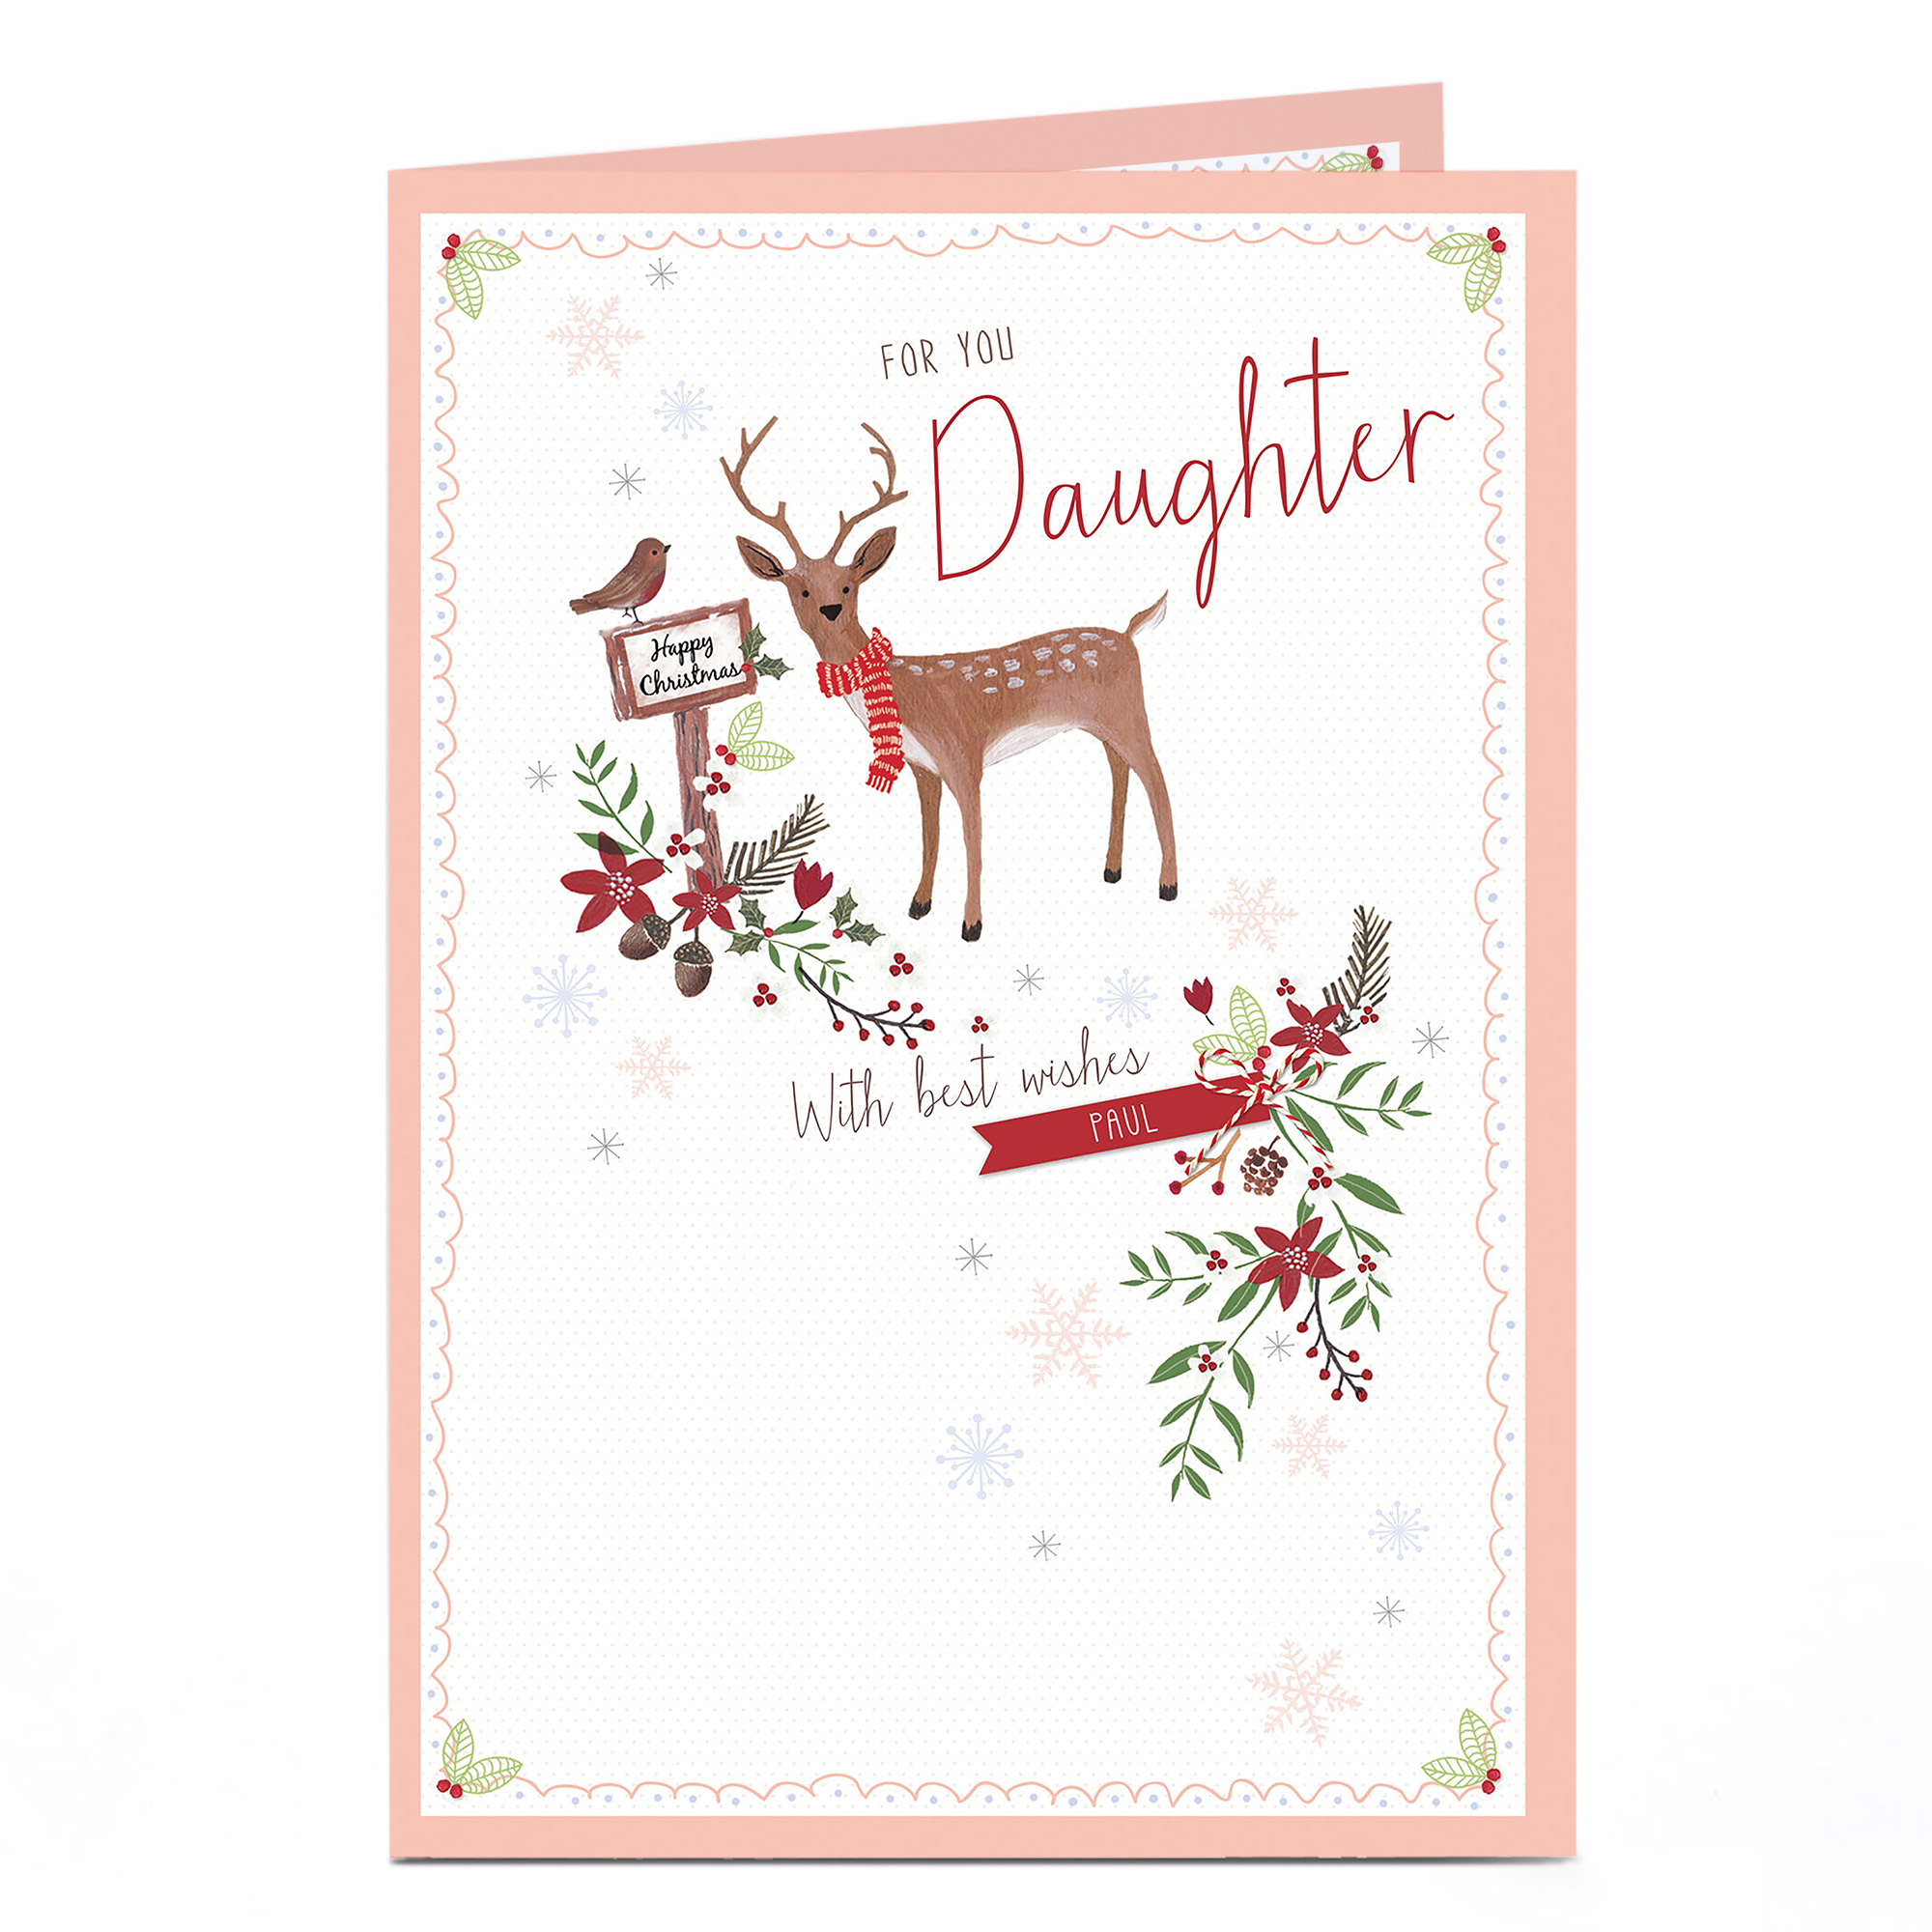 Personalised Christmas Card - For You Daughter